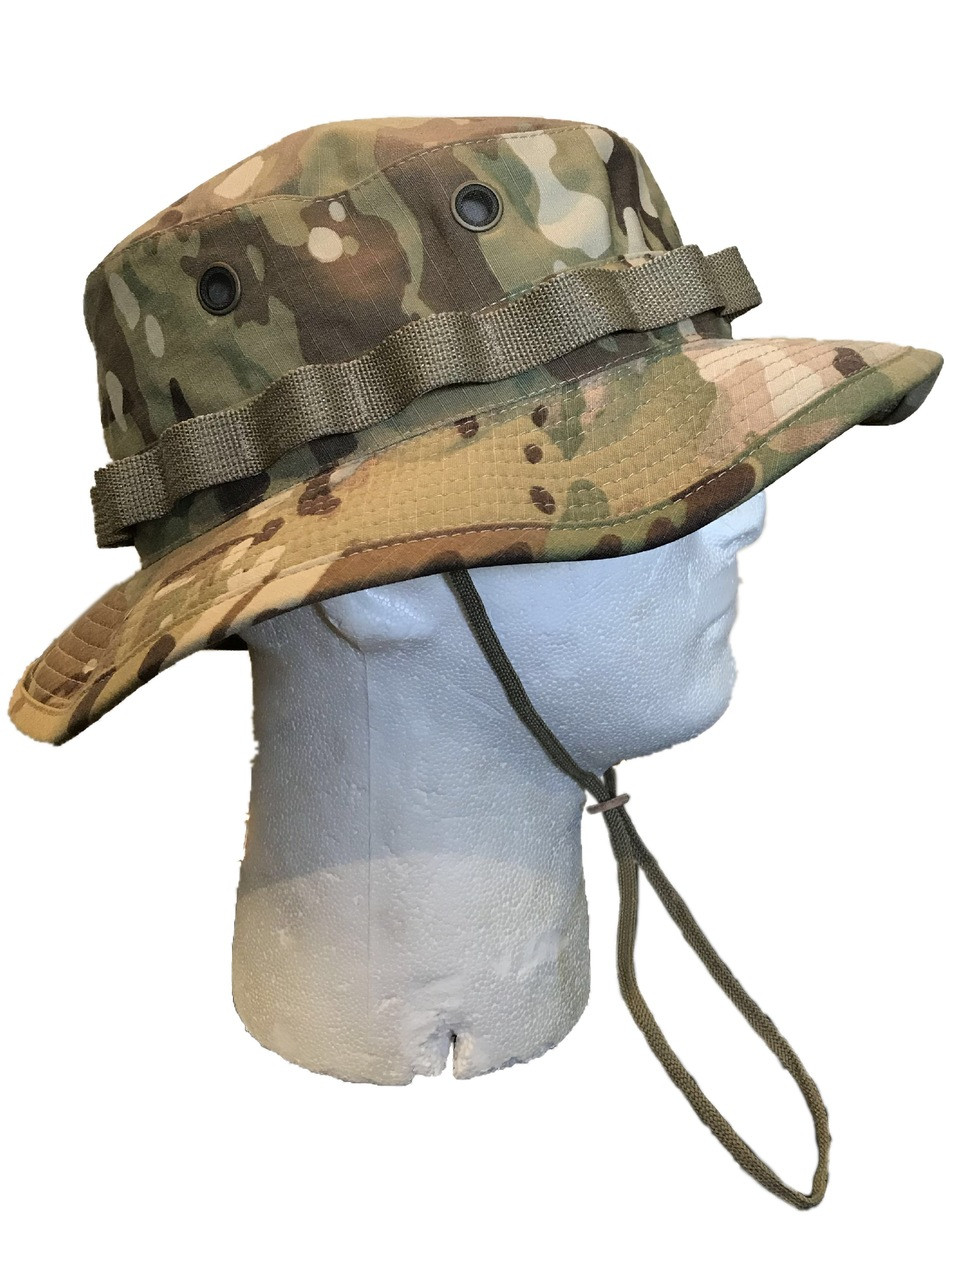 0e563a8491ce8 ... Genuine Army Issue Boonie Bush Hat OCP Scorpion Multicam 50 50 Nylon  Cotton US MADE